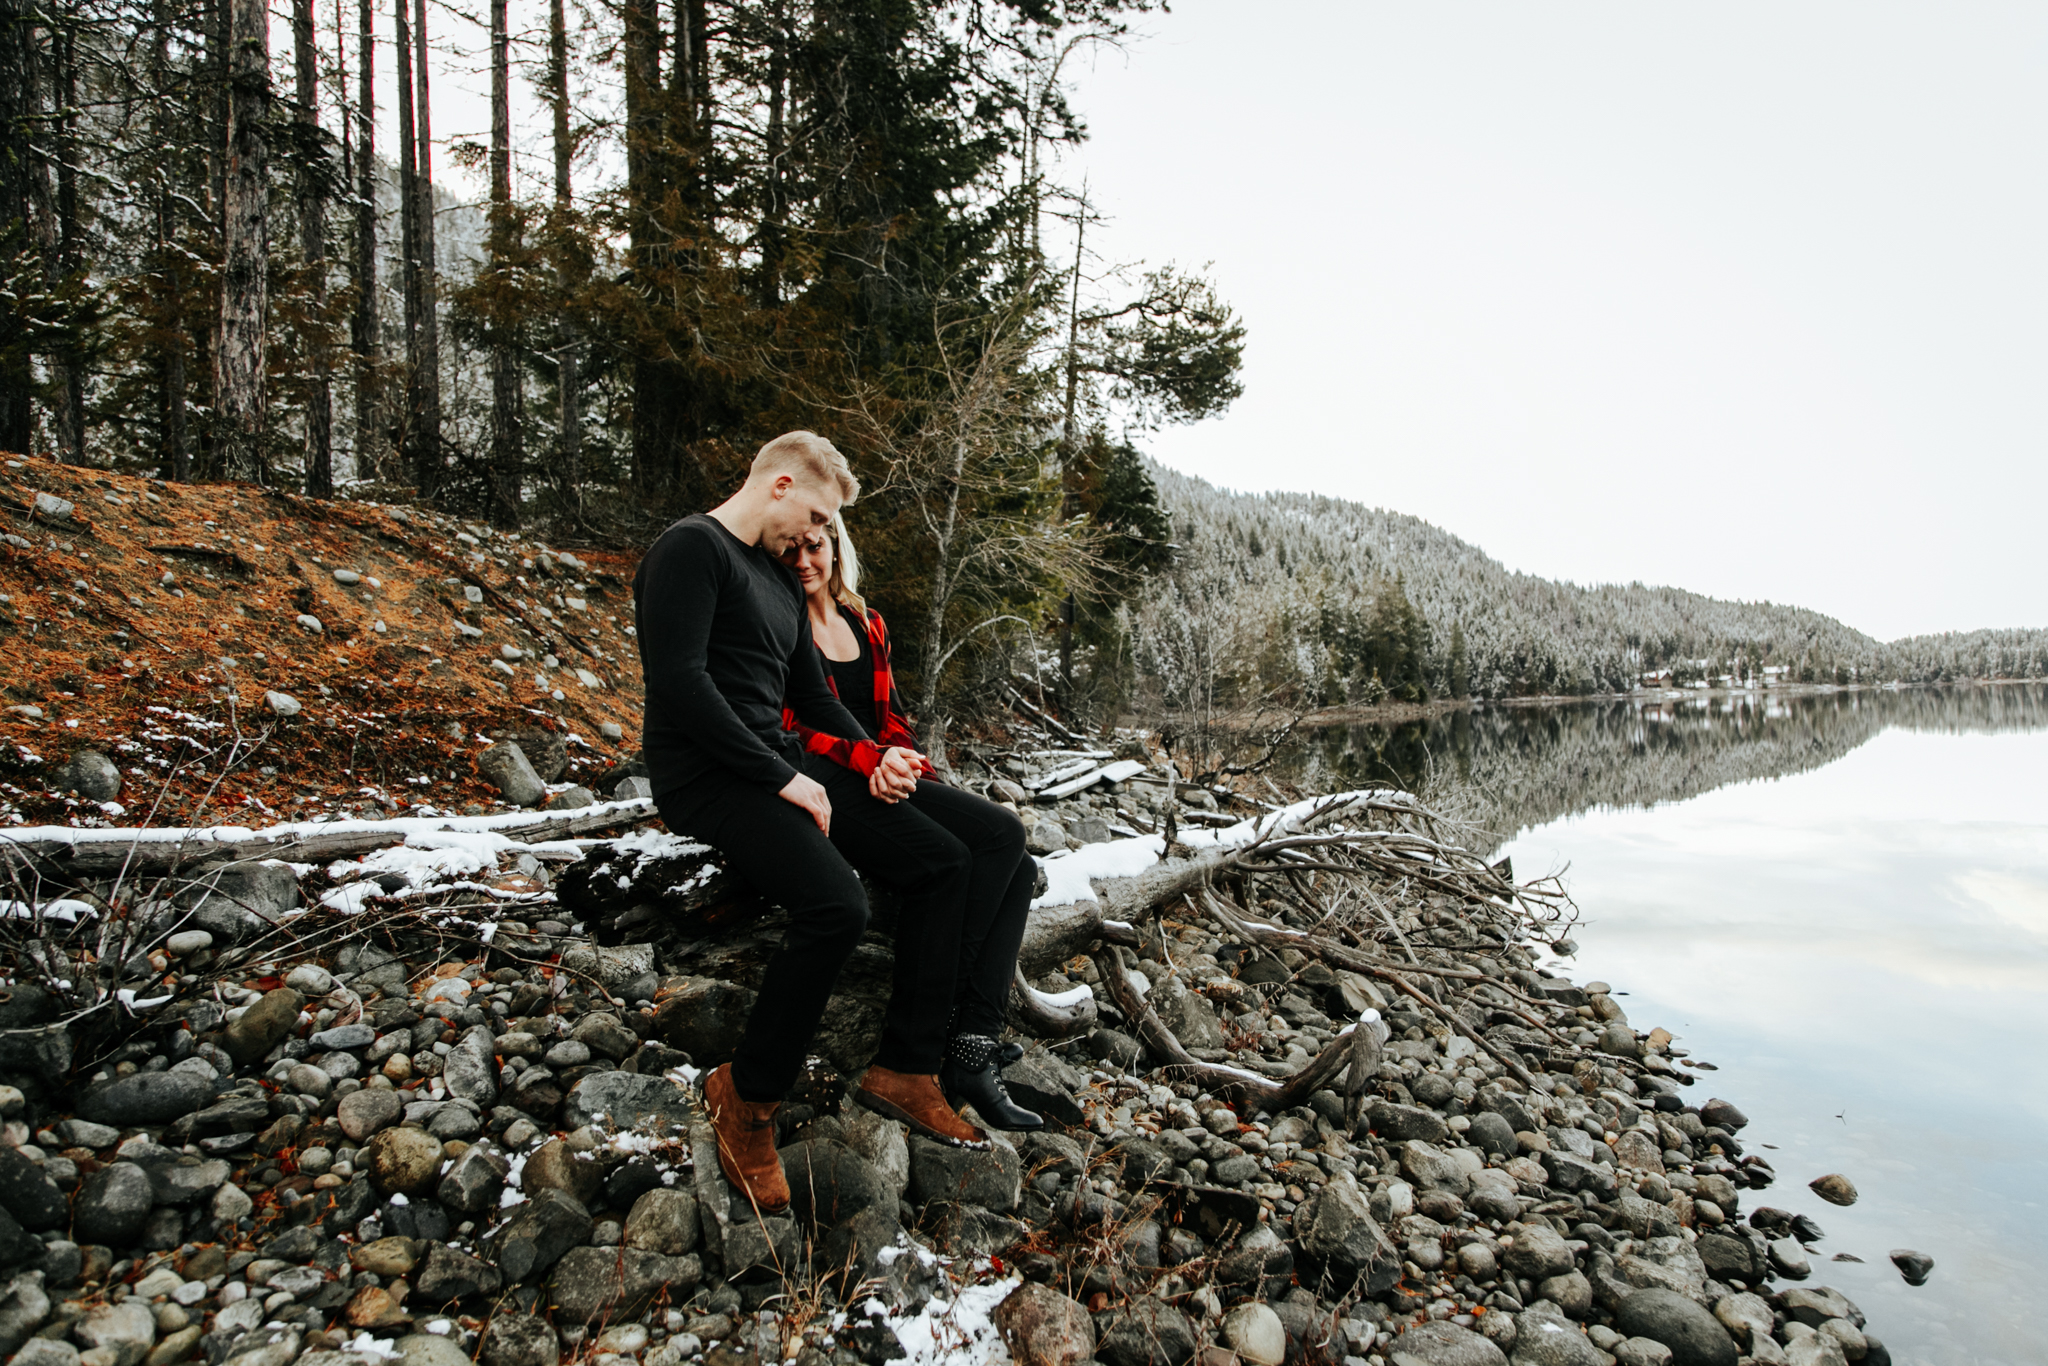 love-and-be-loved-photography-mountain-engagement-ashlyn-rob-perfect-fit-4-u-photo-image-picture-64.jpg